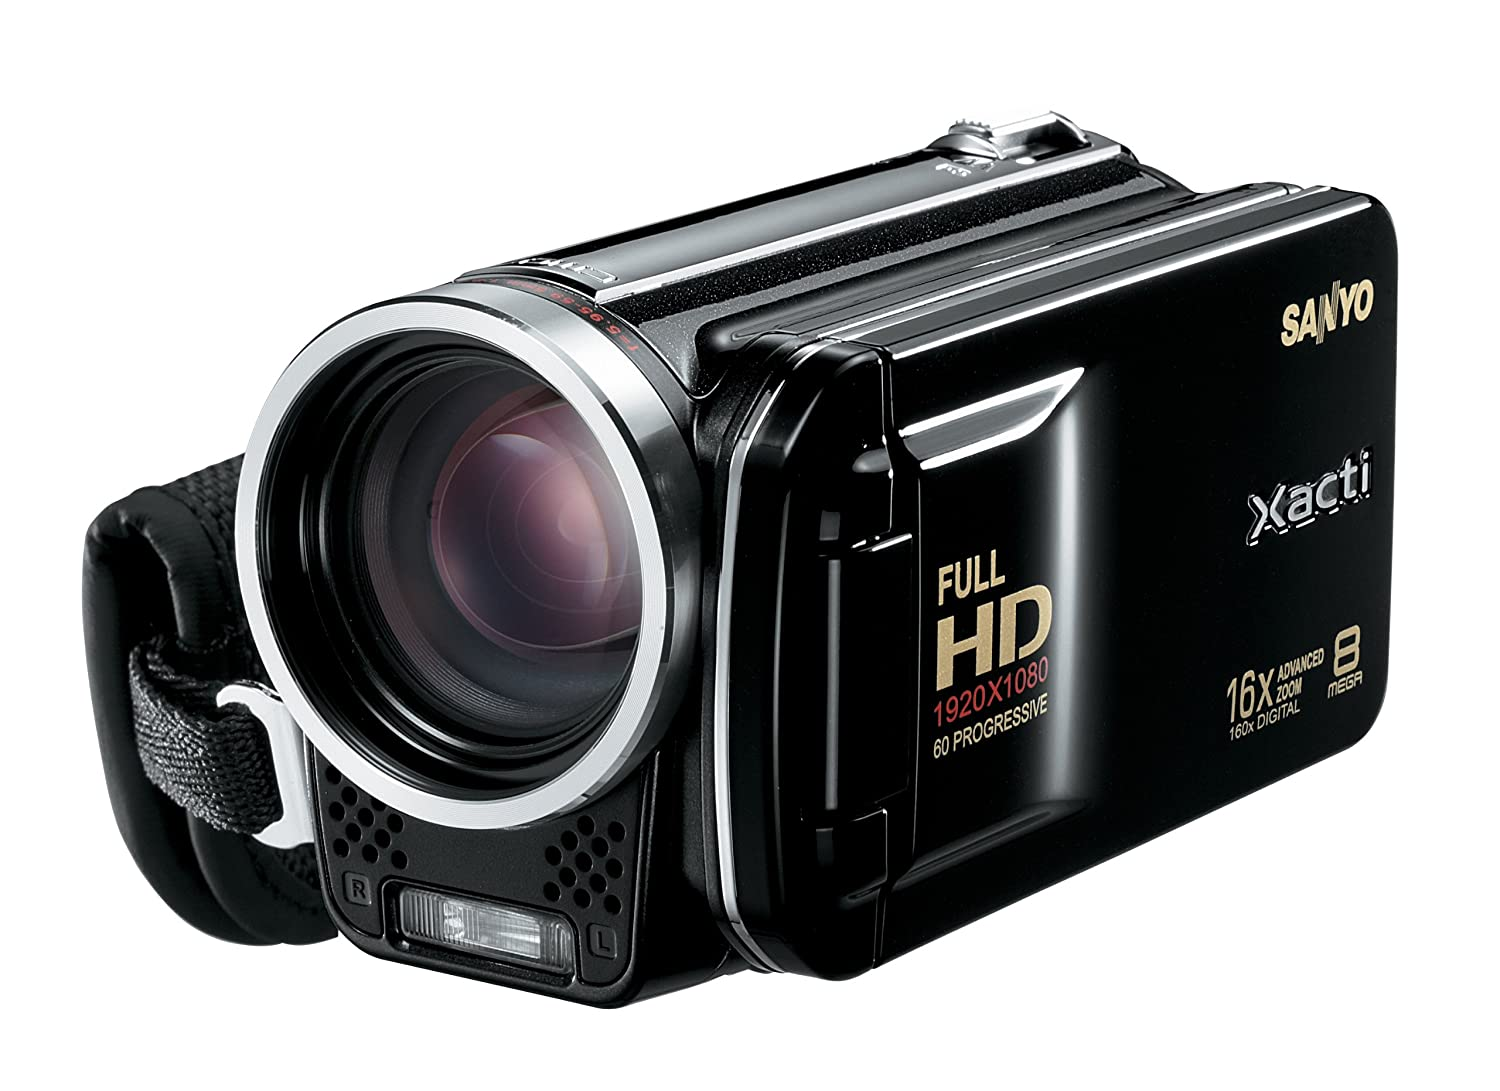 Amazon.com : Sanyo VPC-FH1A Full HD Video and 8 MP Digital Photos (Black)  (Discontinued by Manufacturer) : Camcorders : Camera & Photo